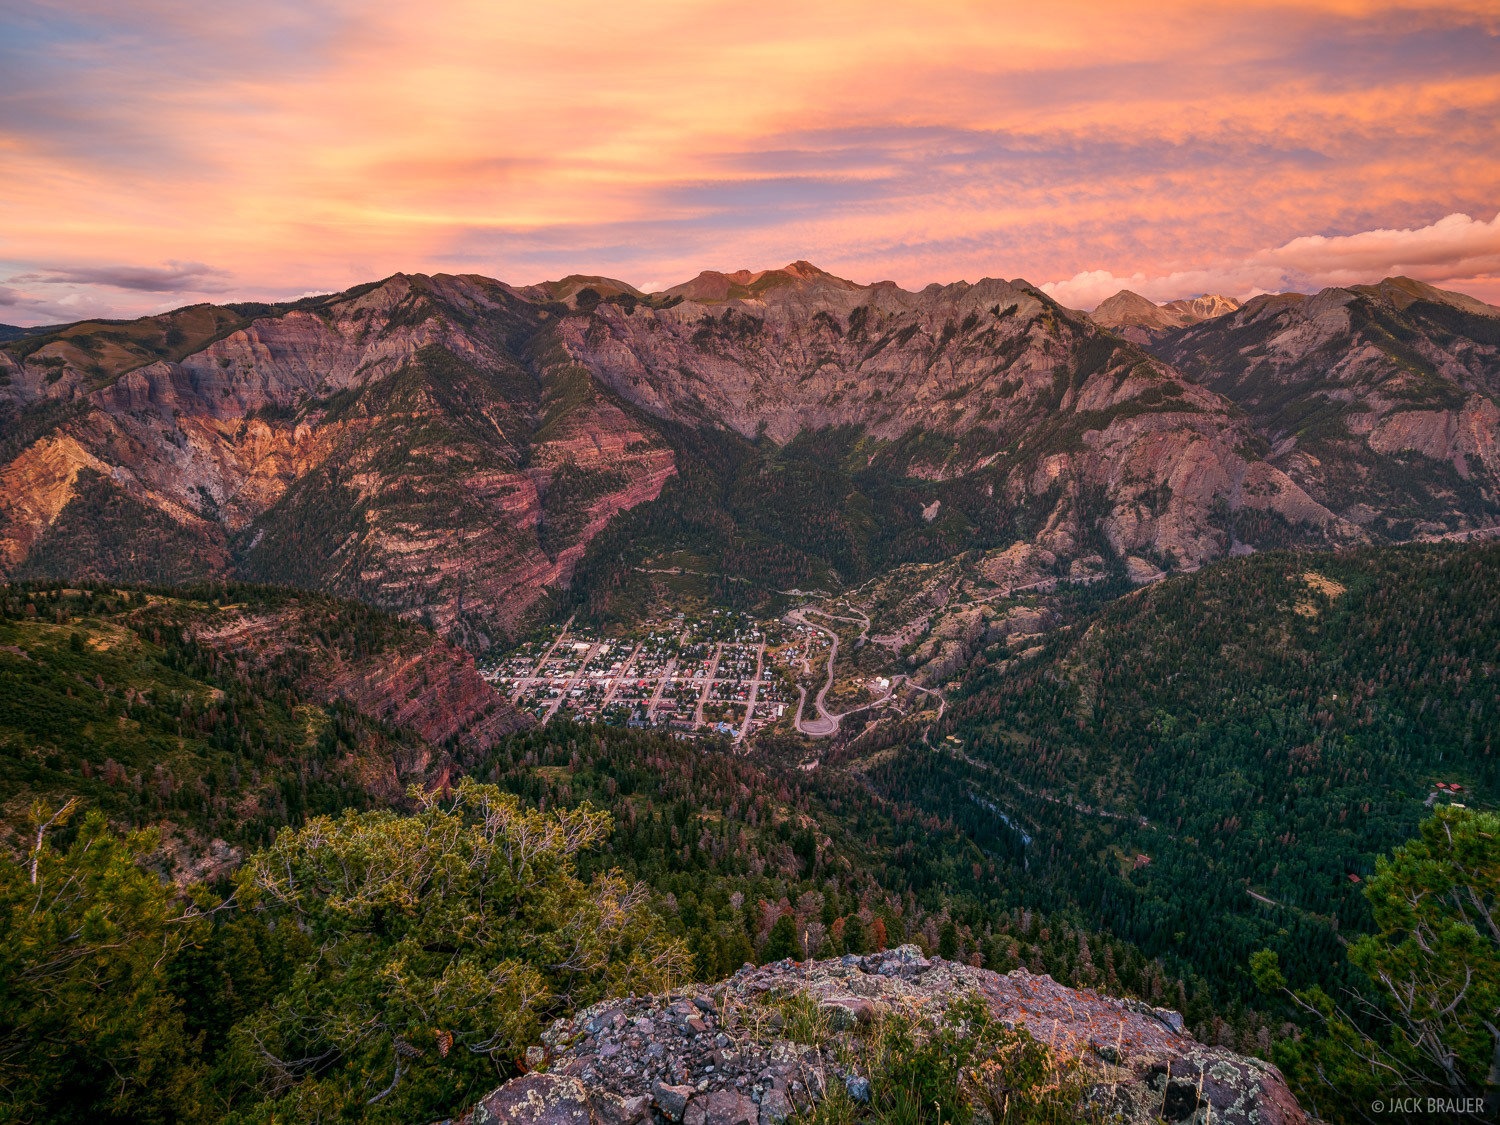 Colorado,Ouray,San Juan Mountains, sunset, photo